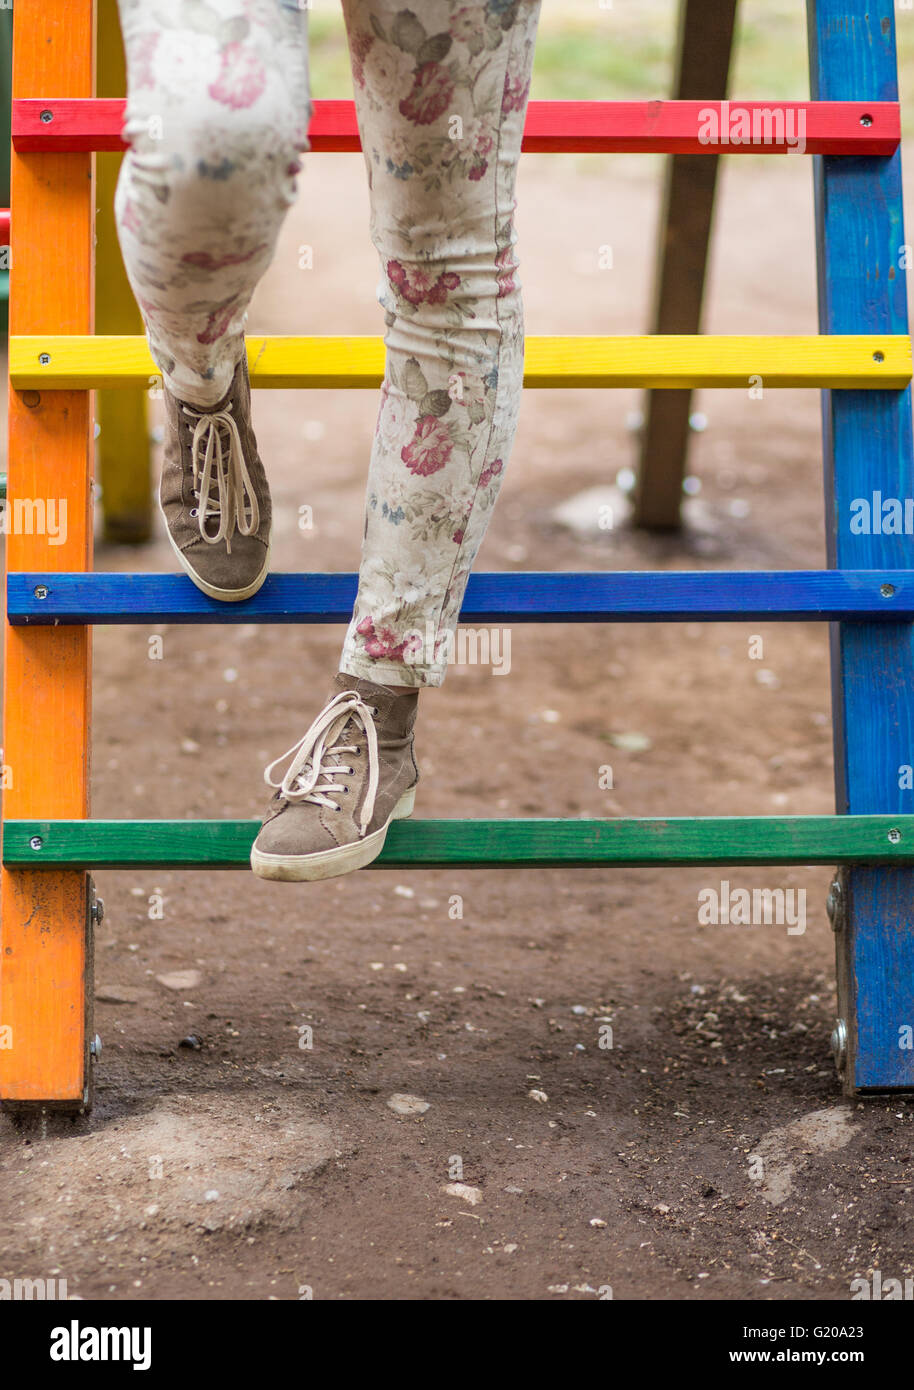 Woman's legs in the colorful children playground - Stock Image